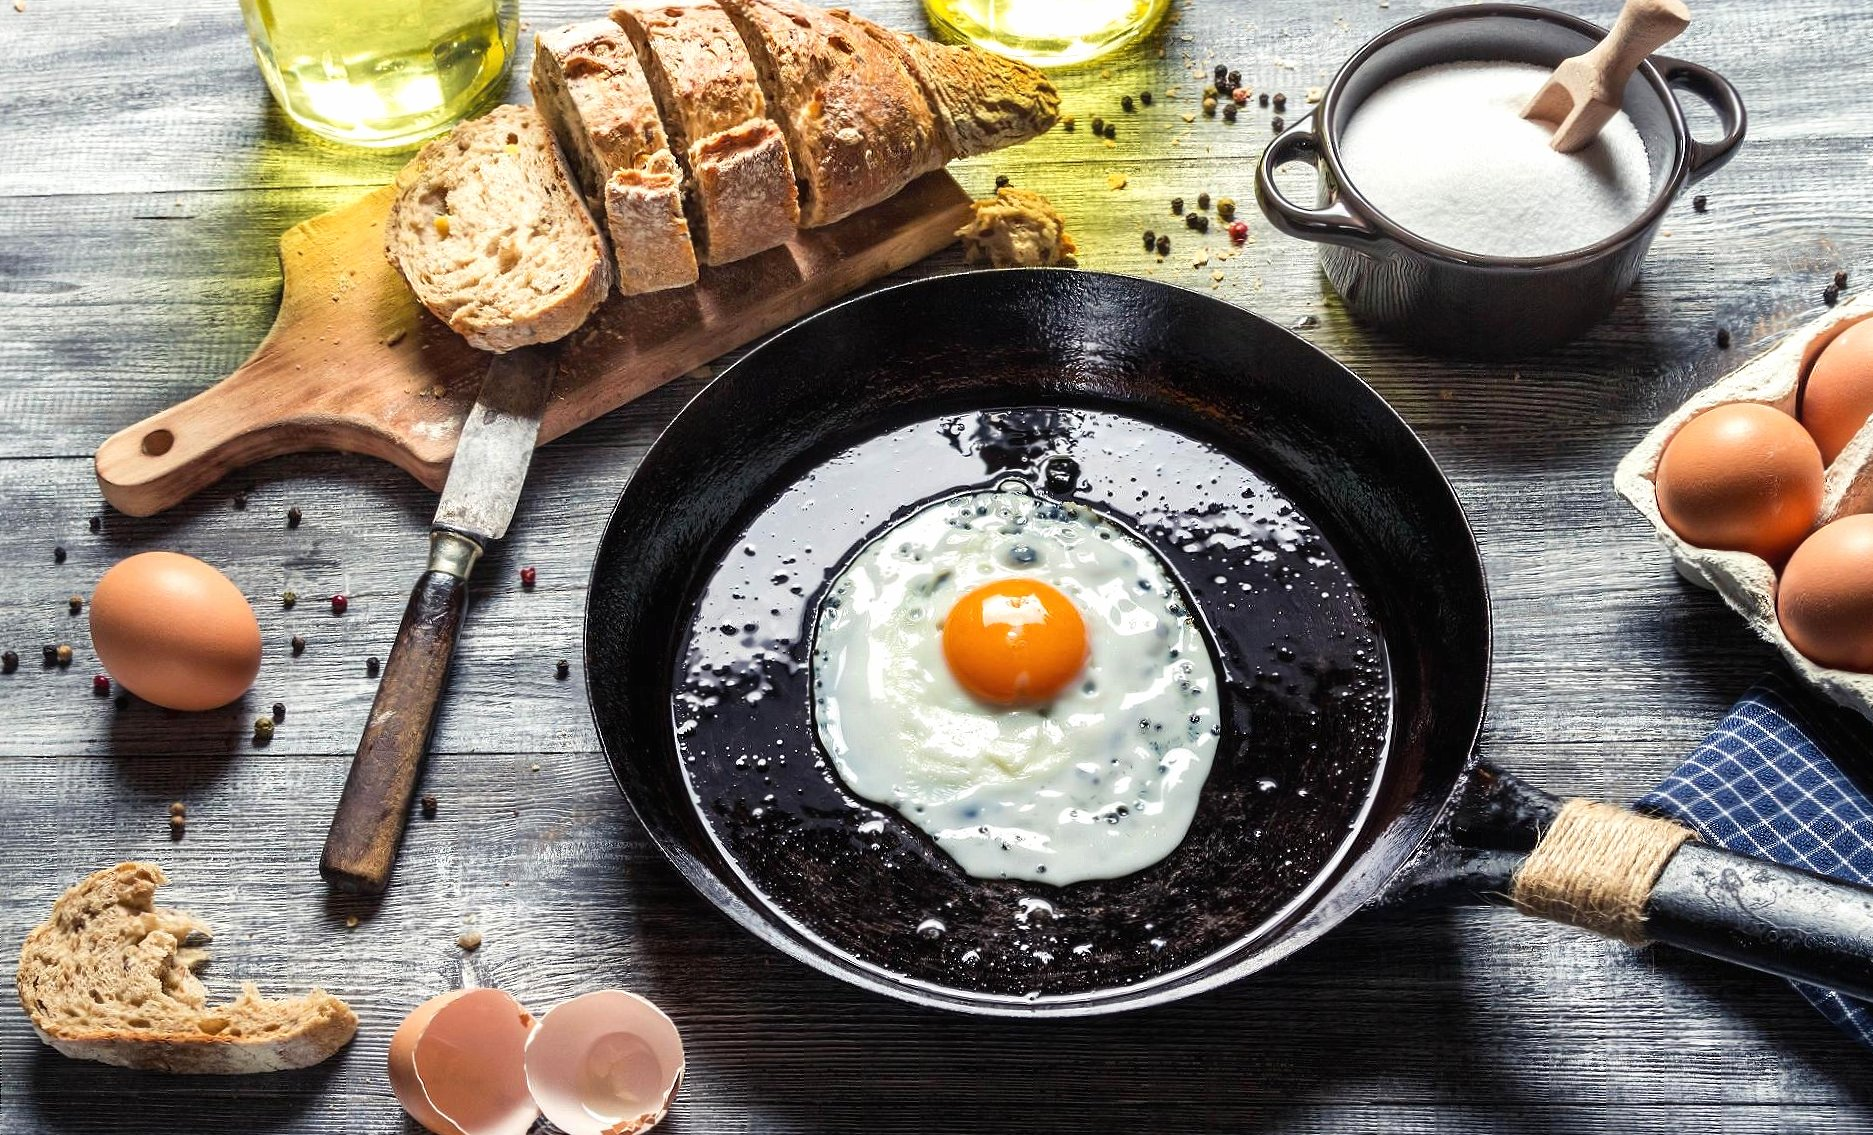 Egg in a frying pan wallpapers HD quality